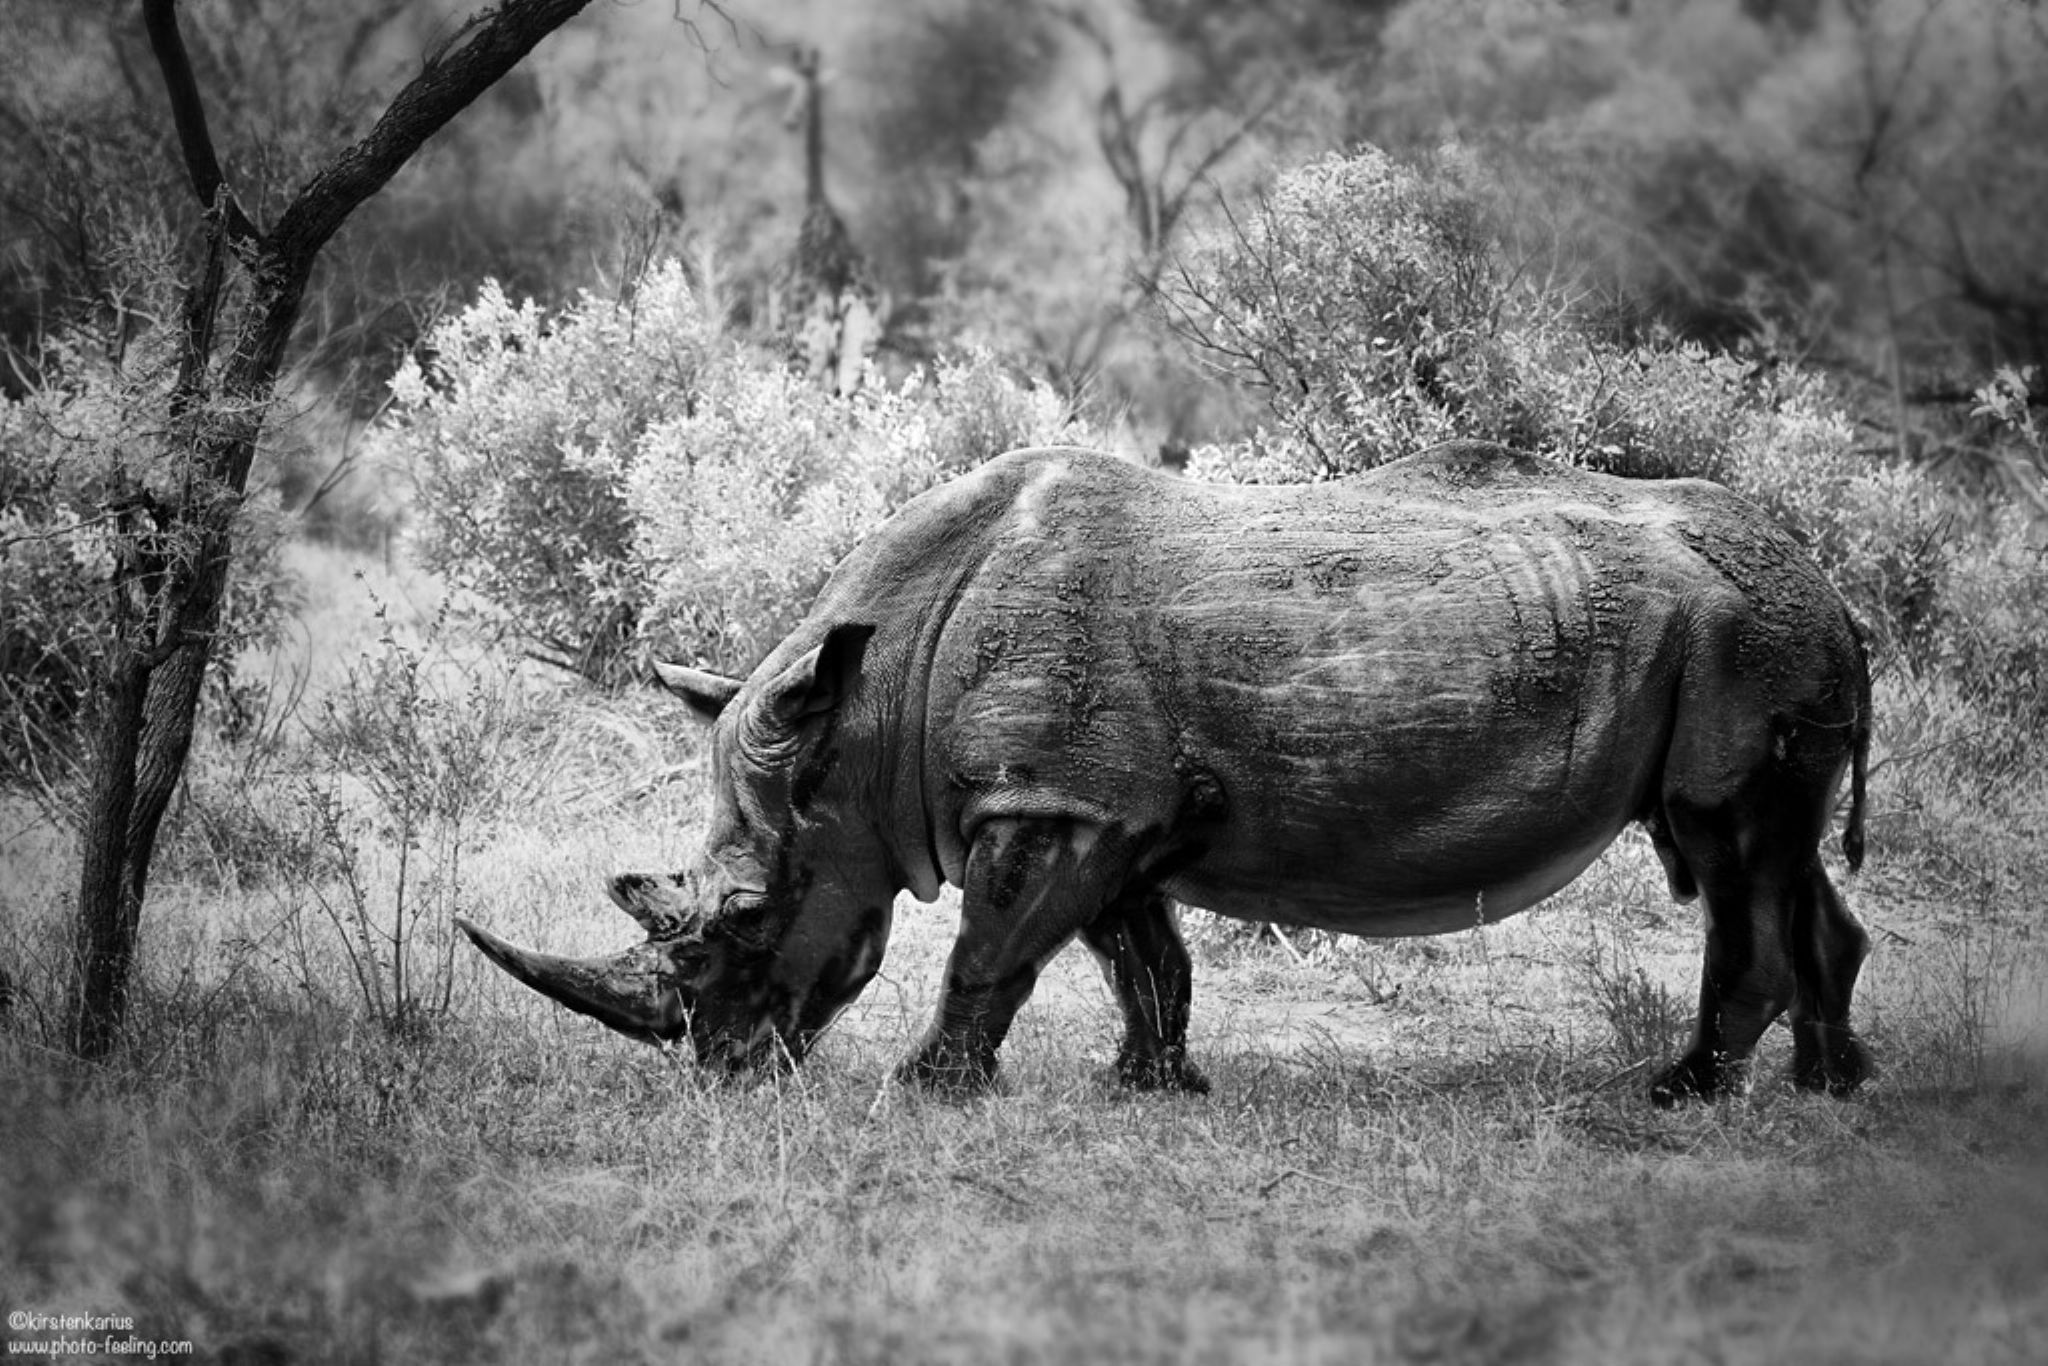 one of the last rhino by Kirsten Karius